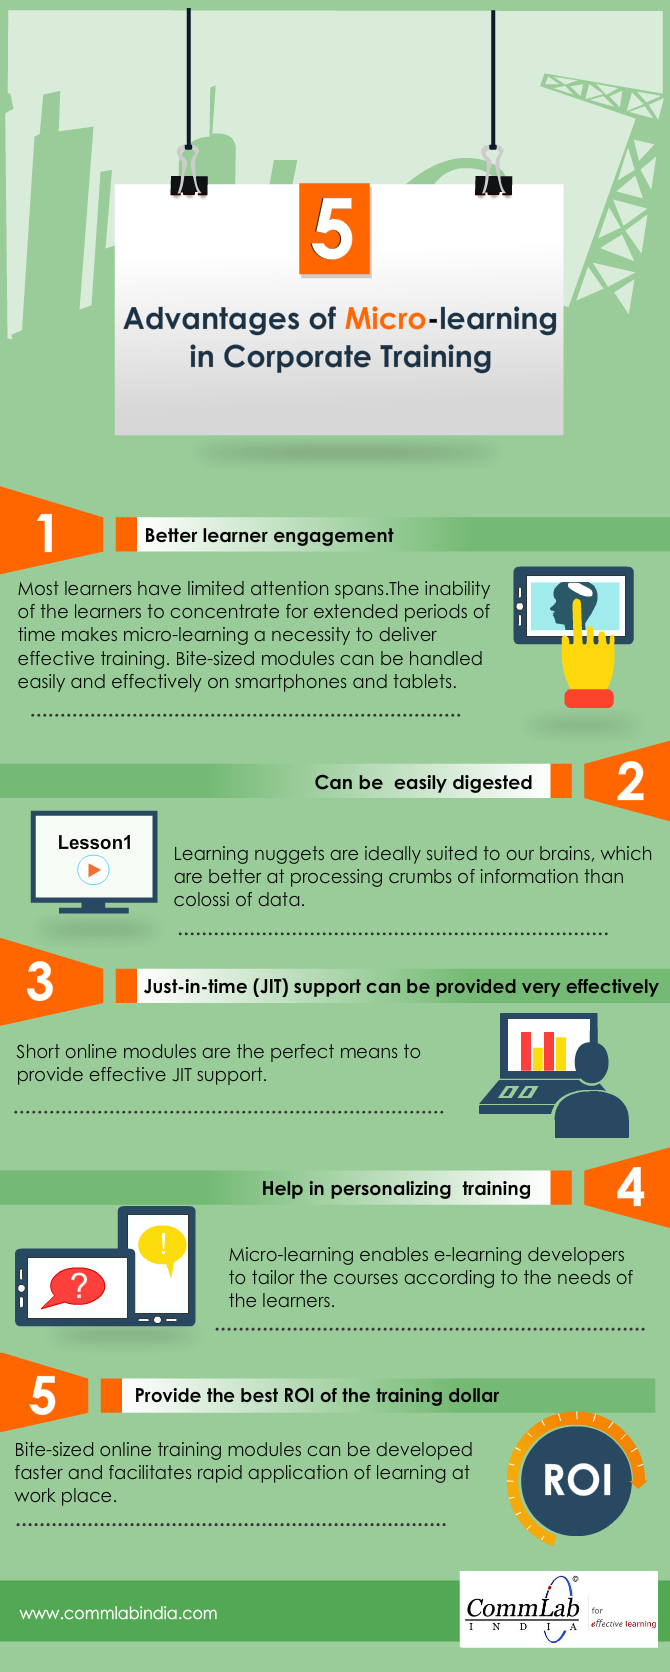 Refresh learning through micro-learning modules